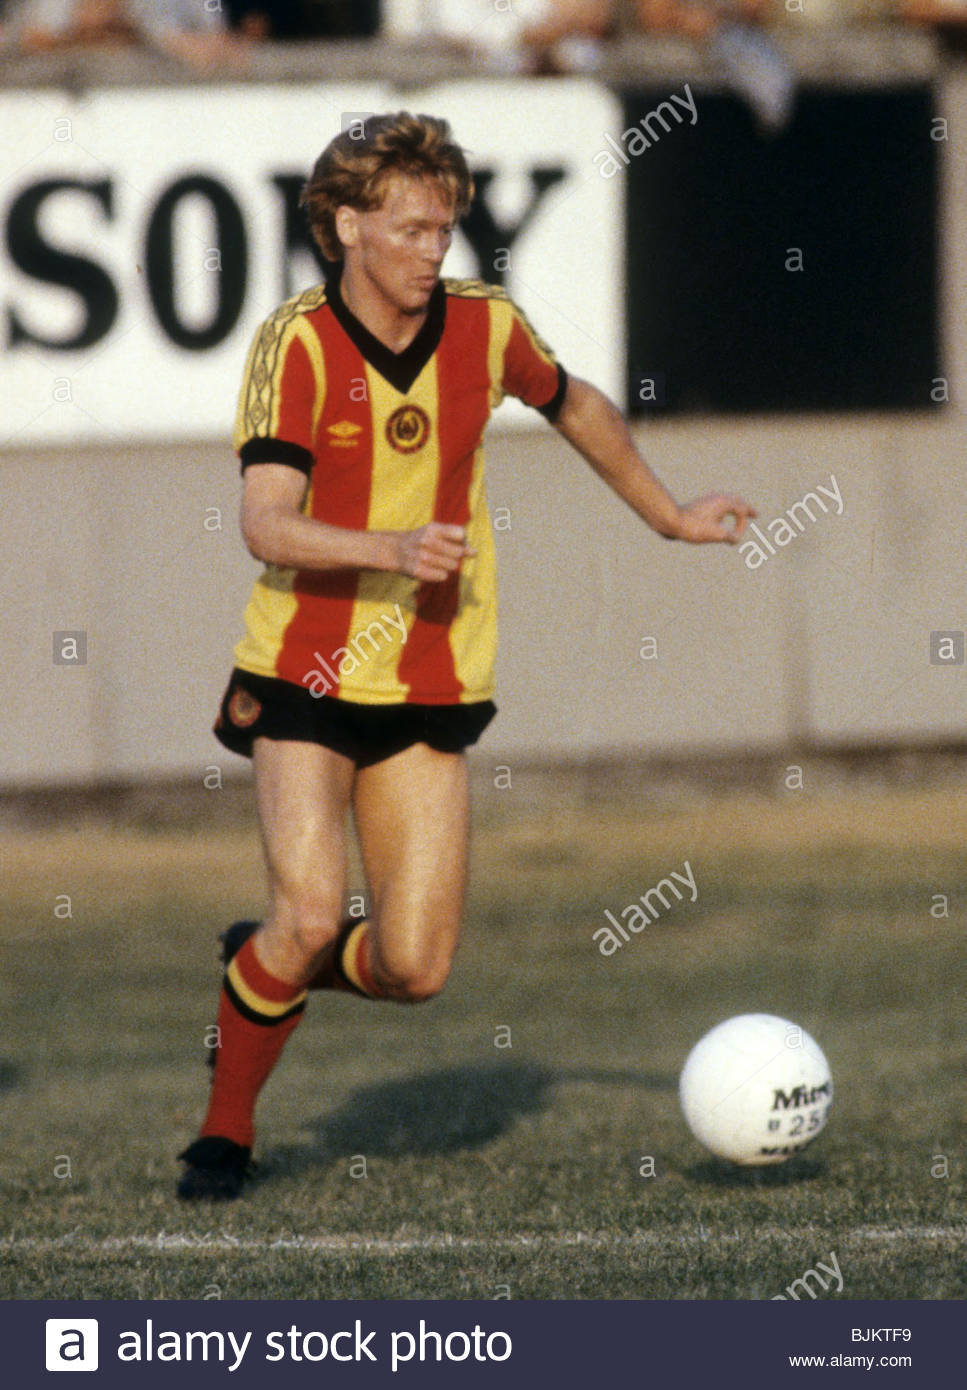 09/08/83 GLASGOW CUP PARTICK THISTLE v CELTIC (0-2) FIRHILL - GLASGOW Maurice Johnston in action for Partick Thistle. - Stock Image